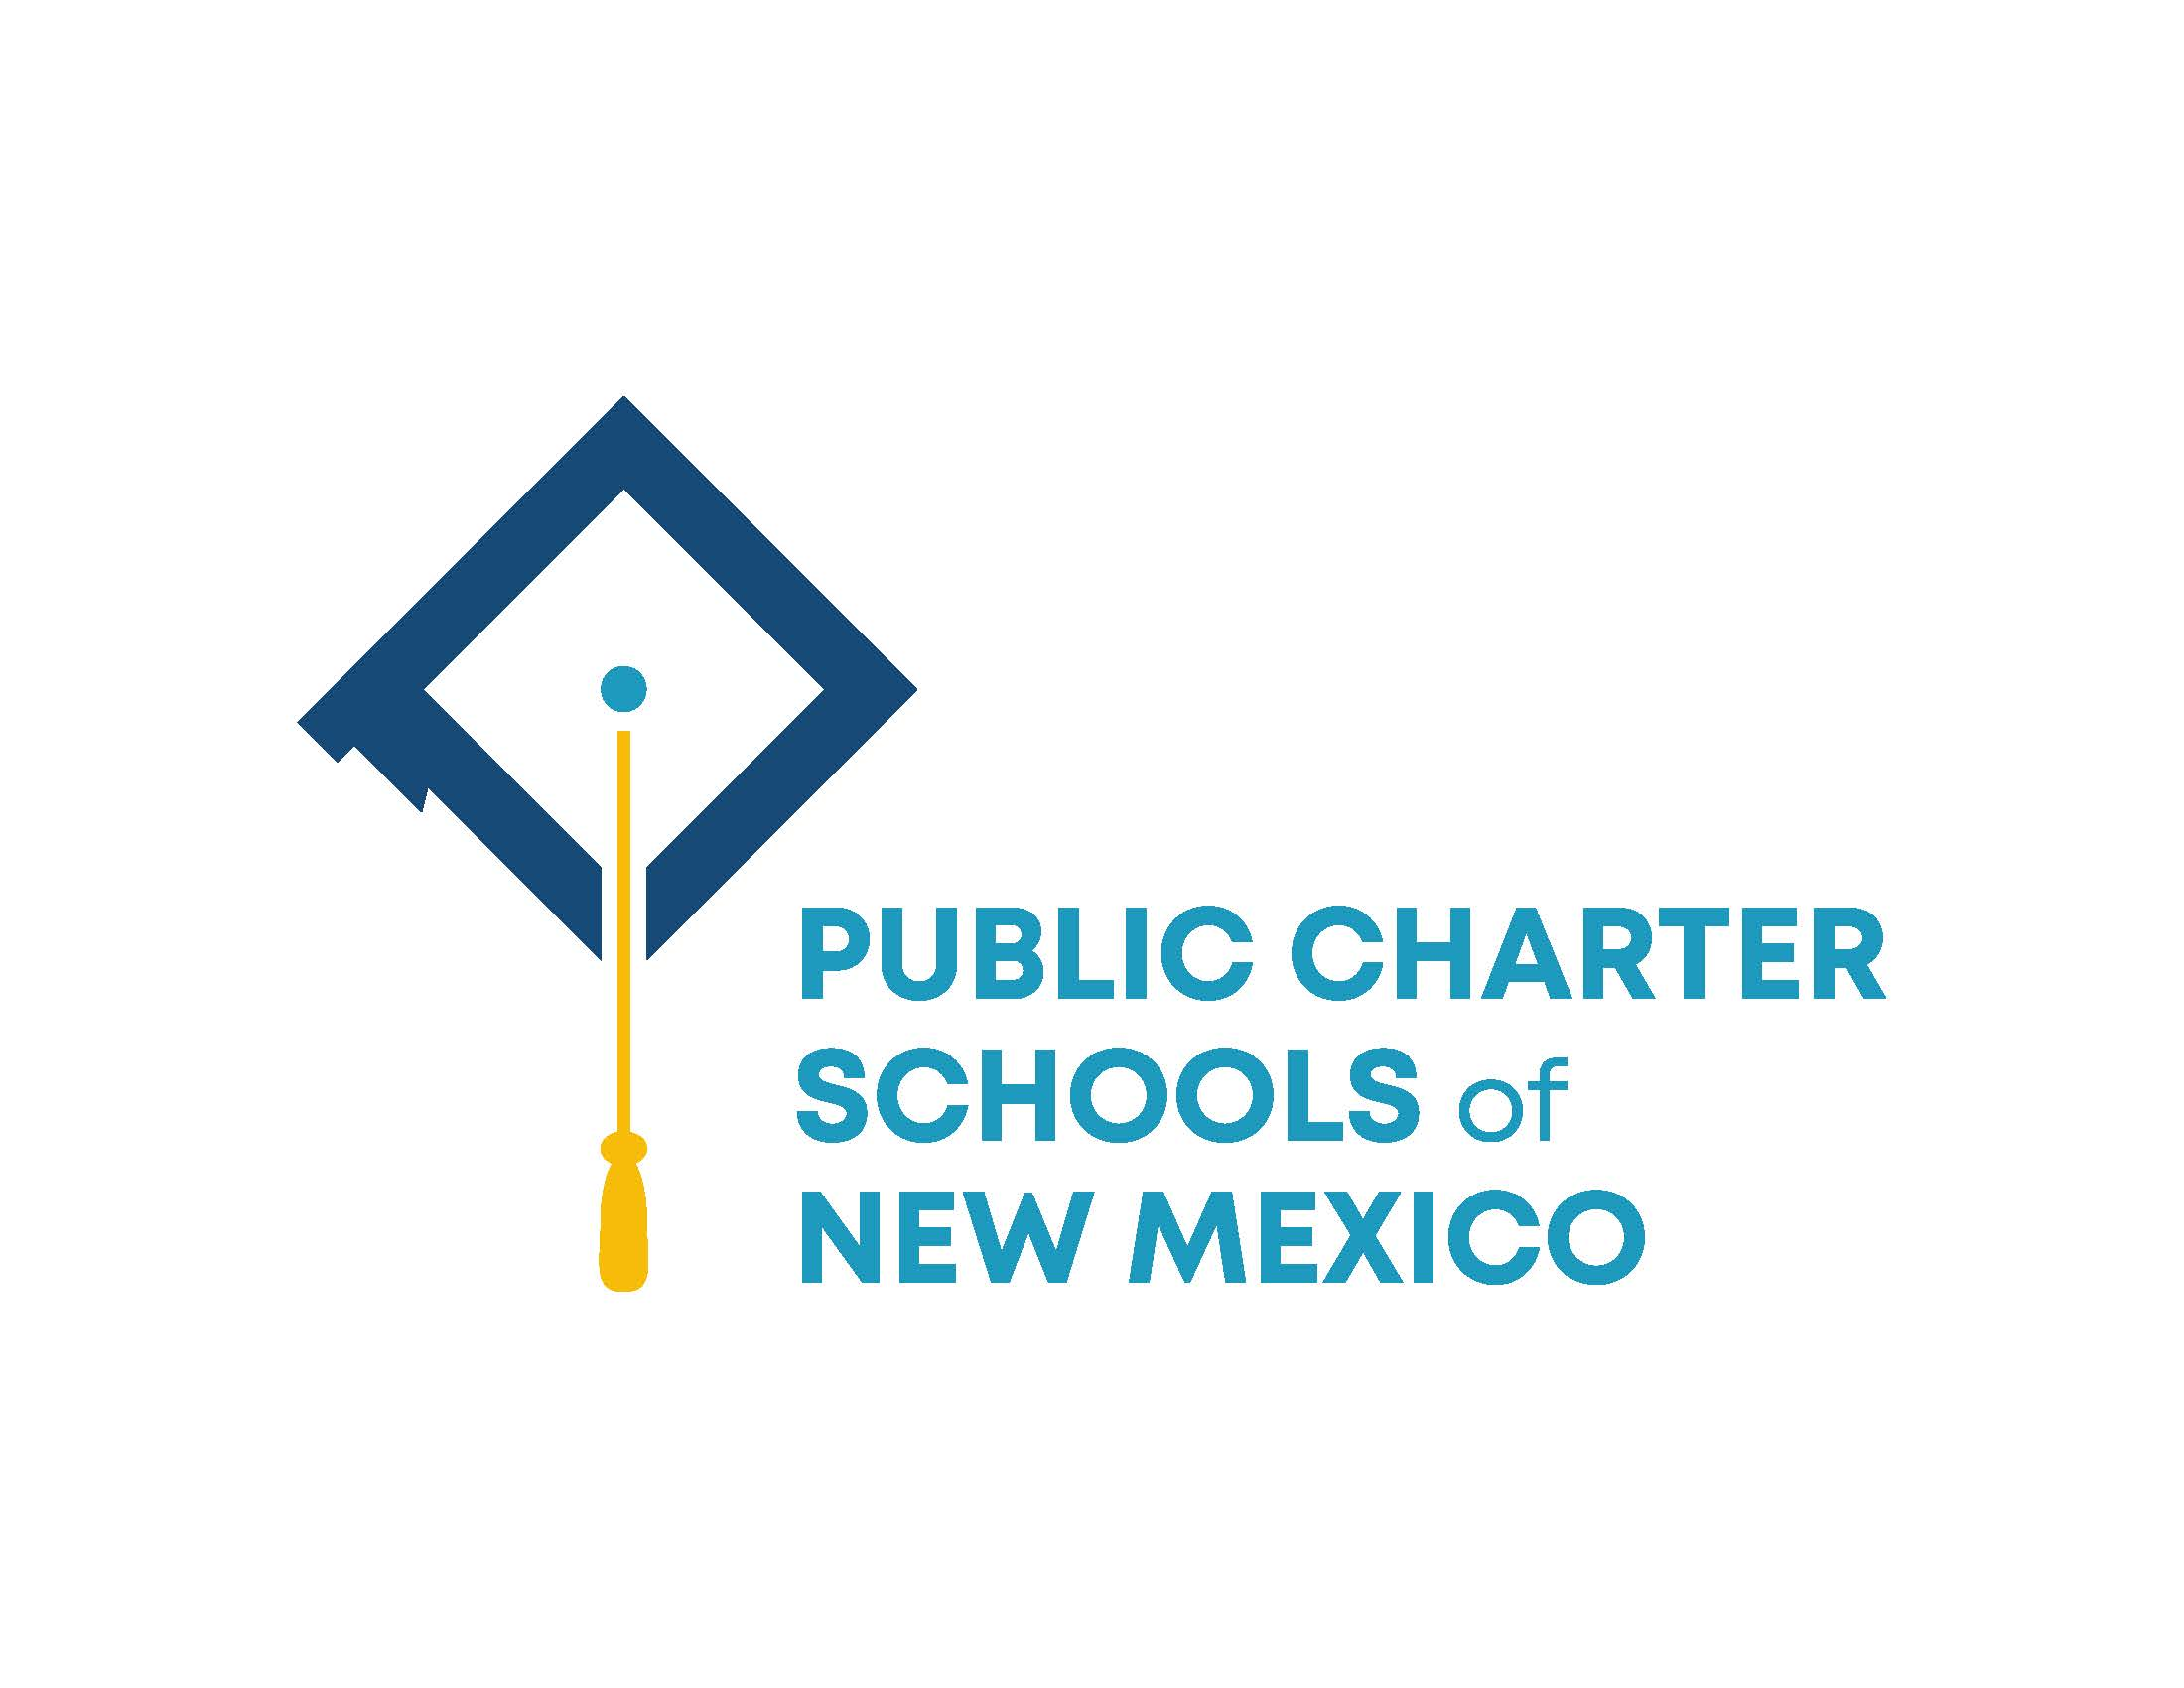 Public Charter Schools of New Mexico 19th Annual Conference